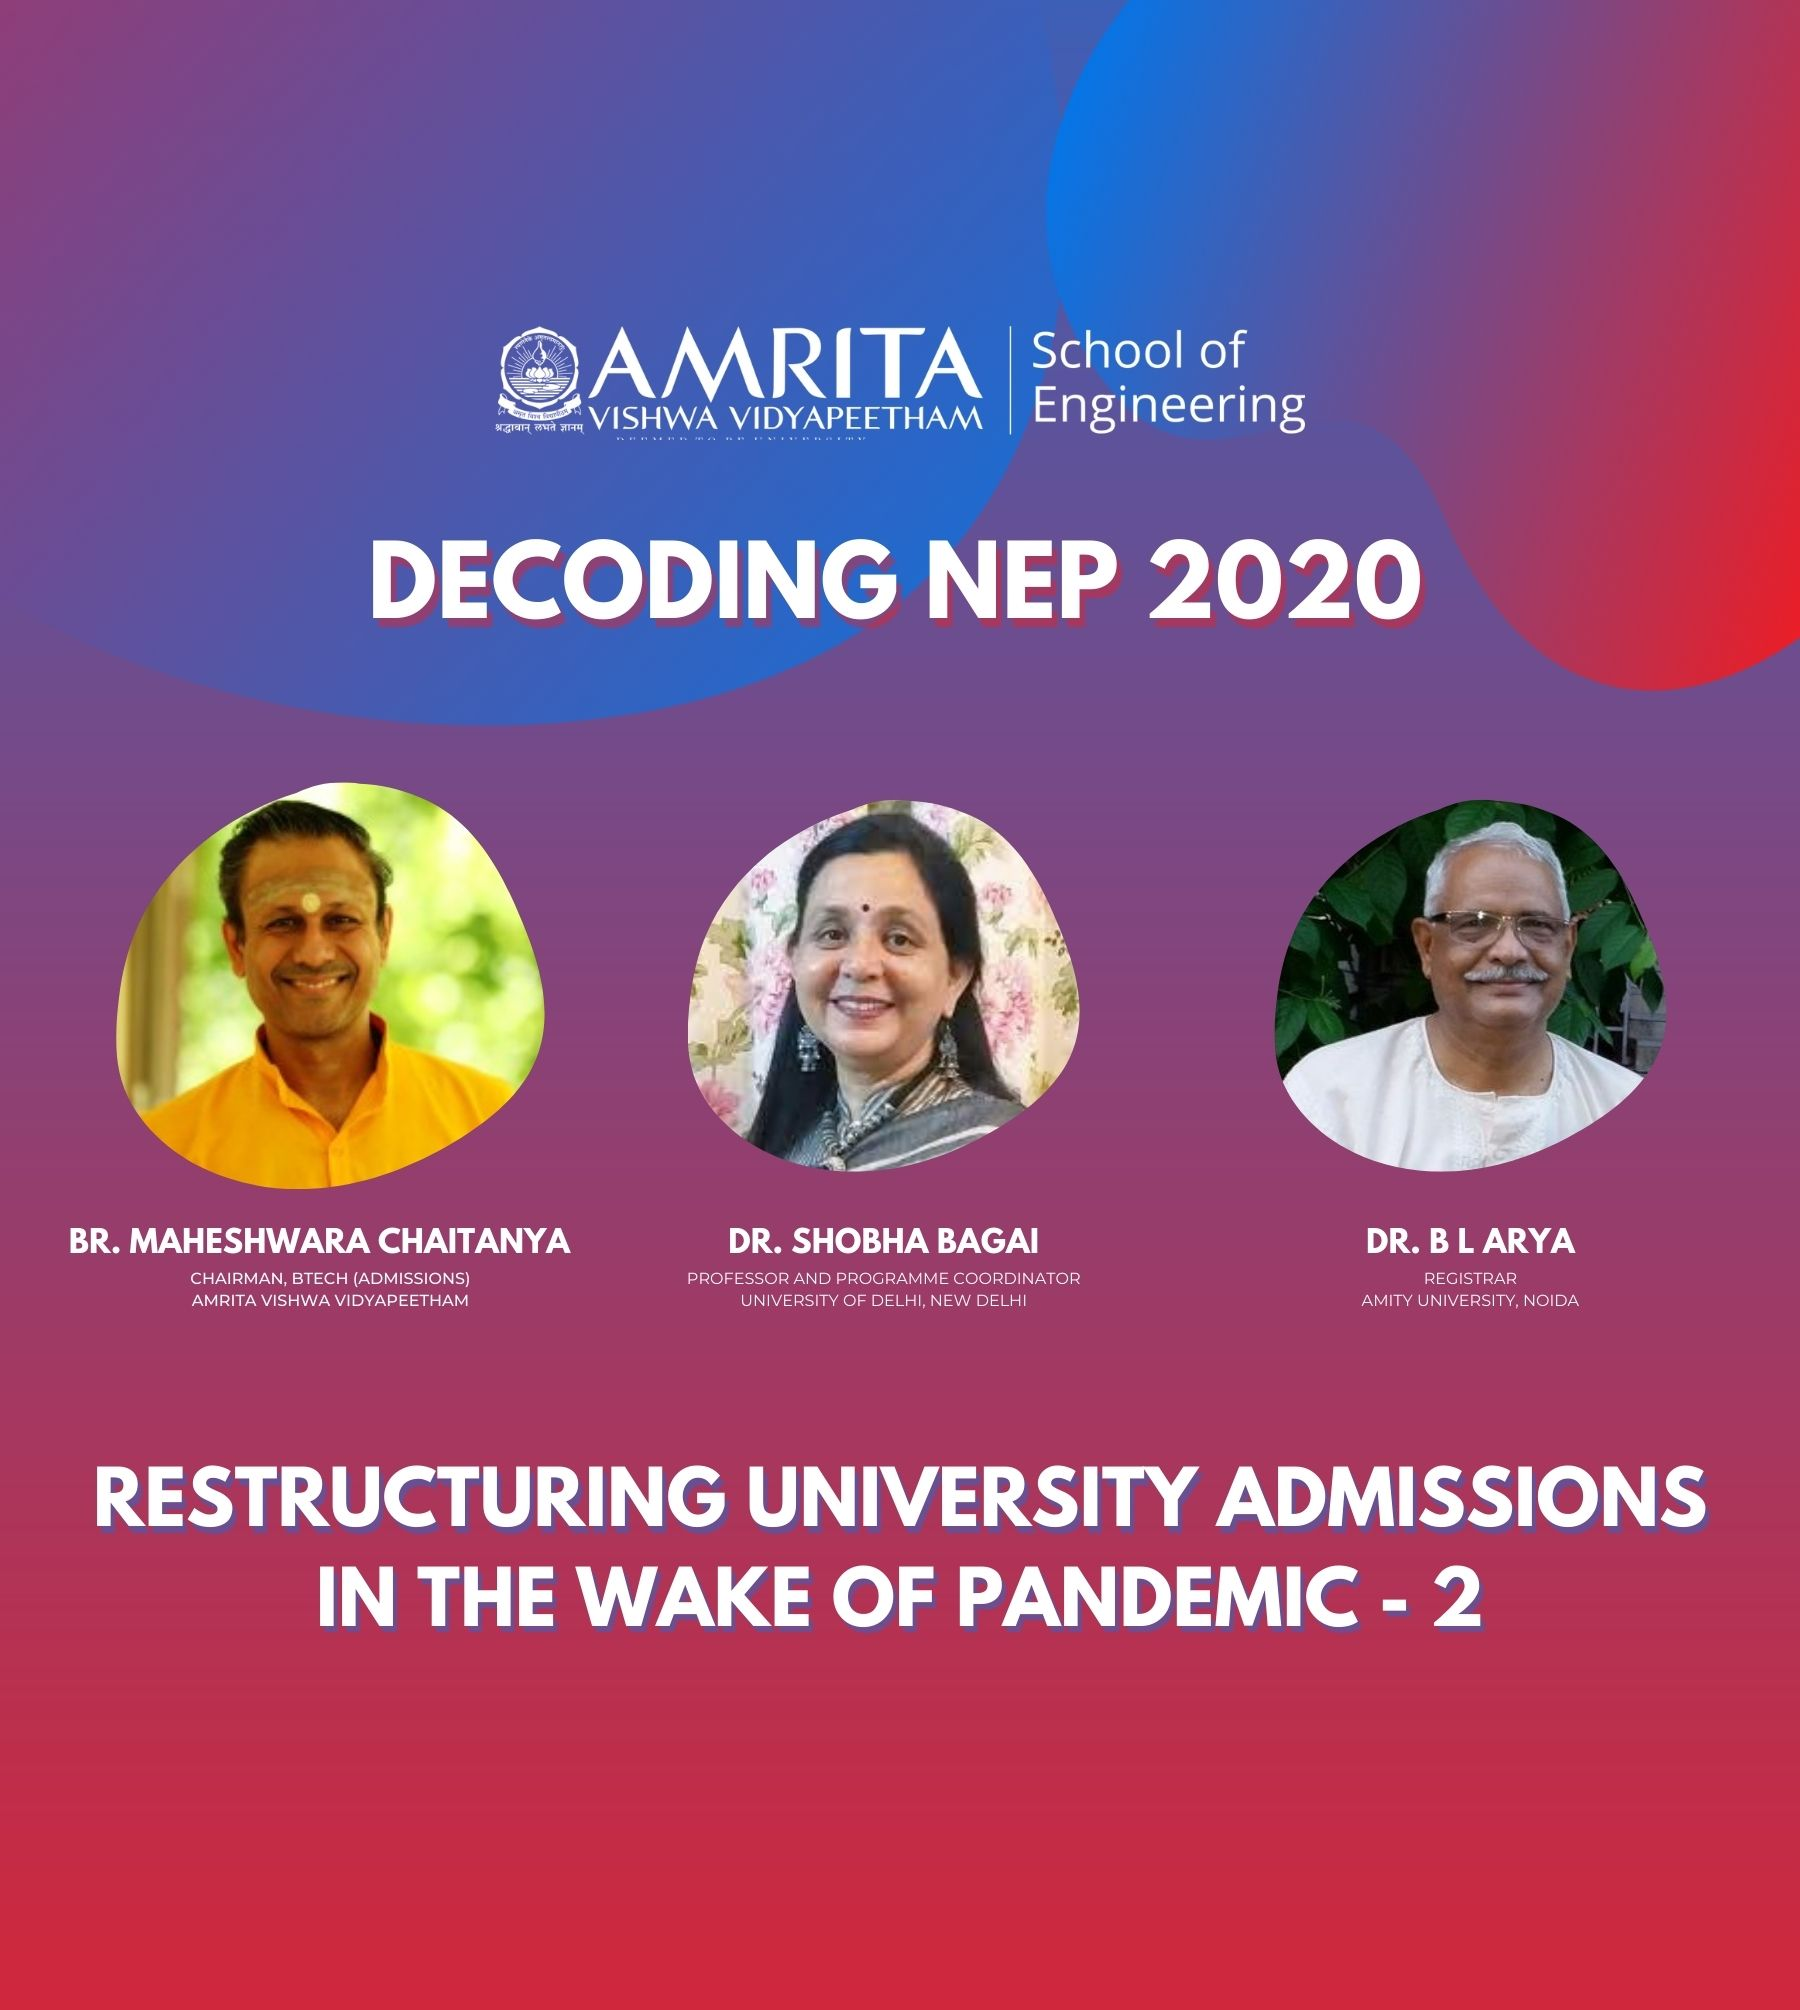 Restructuring University Admissions in the wake of Pandemic - Part 2